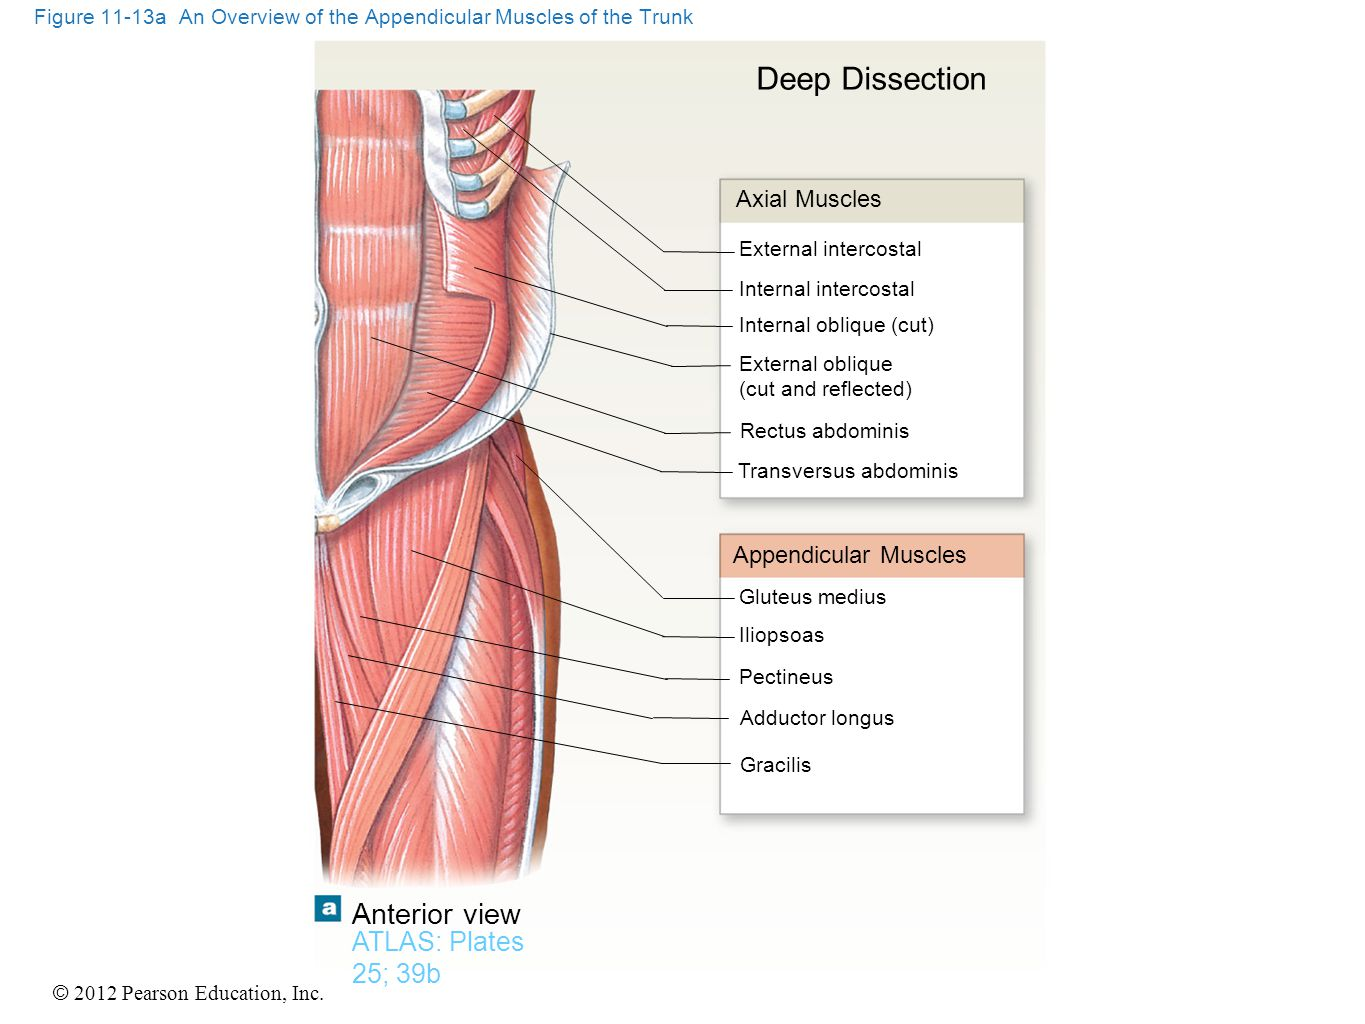 © 2012 Pearson Education, Inc. Figure 11-13a An Overview of the Appendicular Muscles of the Trunk ATLAS: Plates 25; 39b Anterior view Axial Muscles Ap